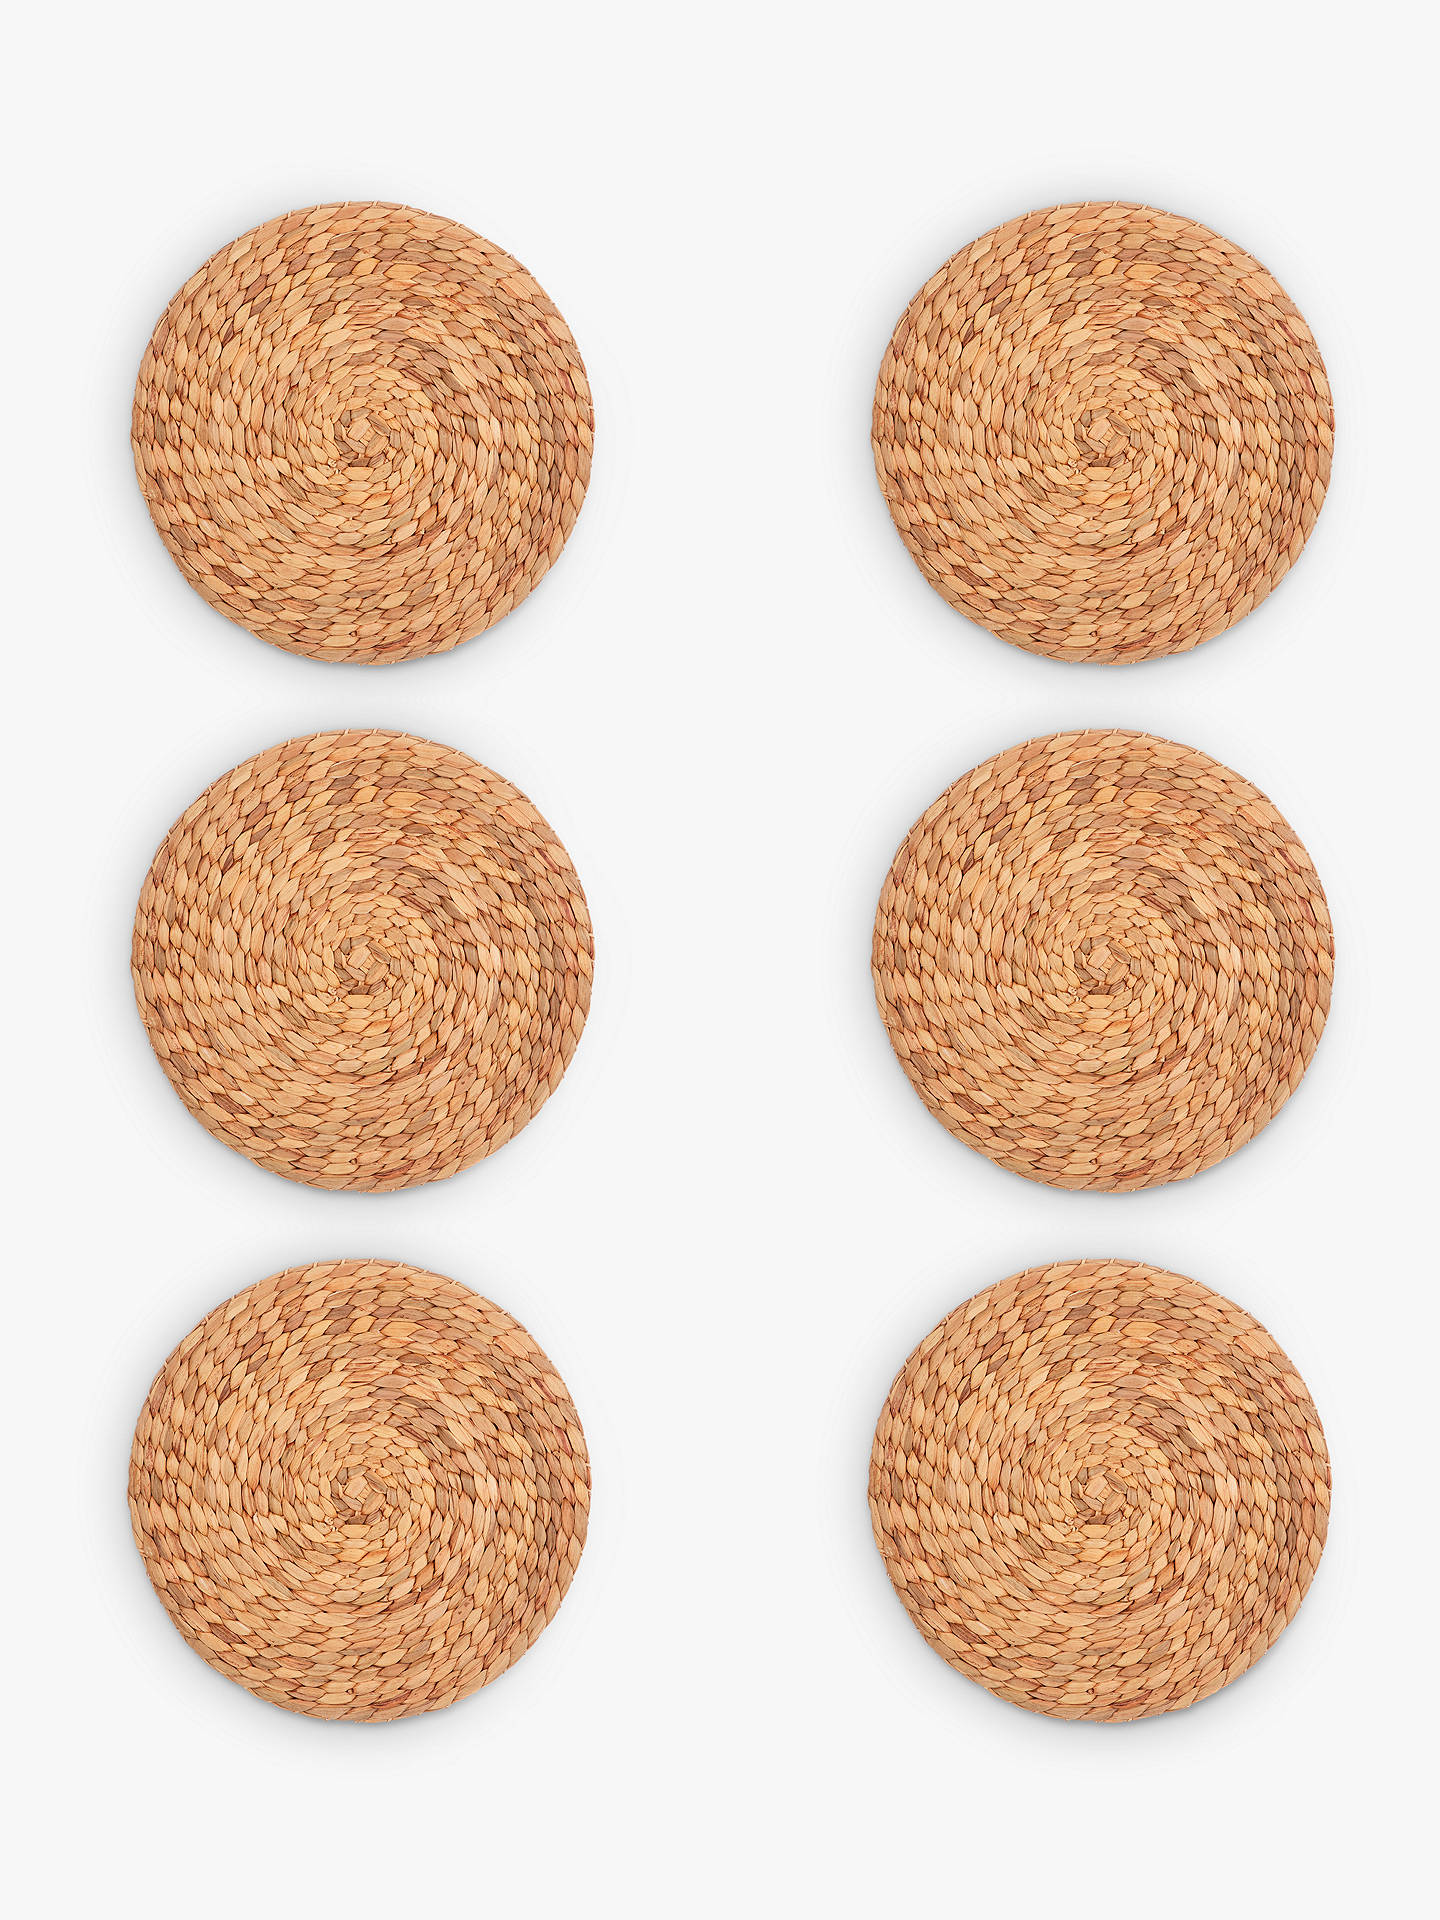 Buy John Lewis & Partners Water Hyacinth Round Placemats, Natural, Set of 6 Online at johnlewis.com